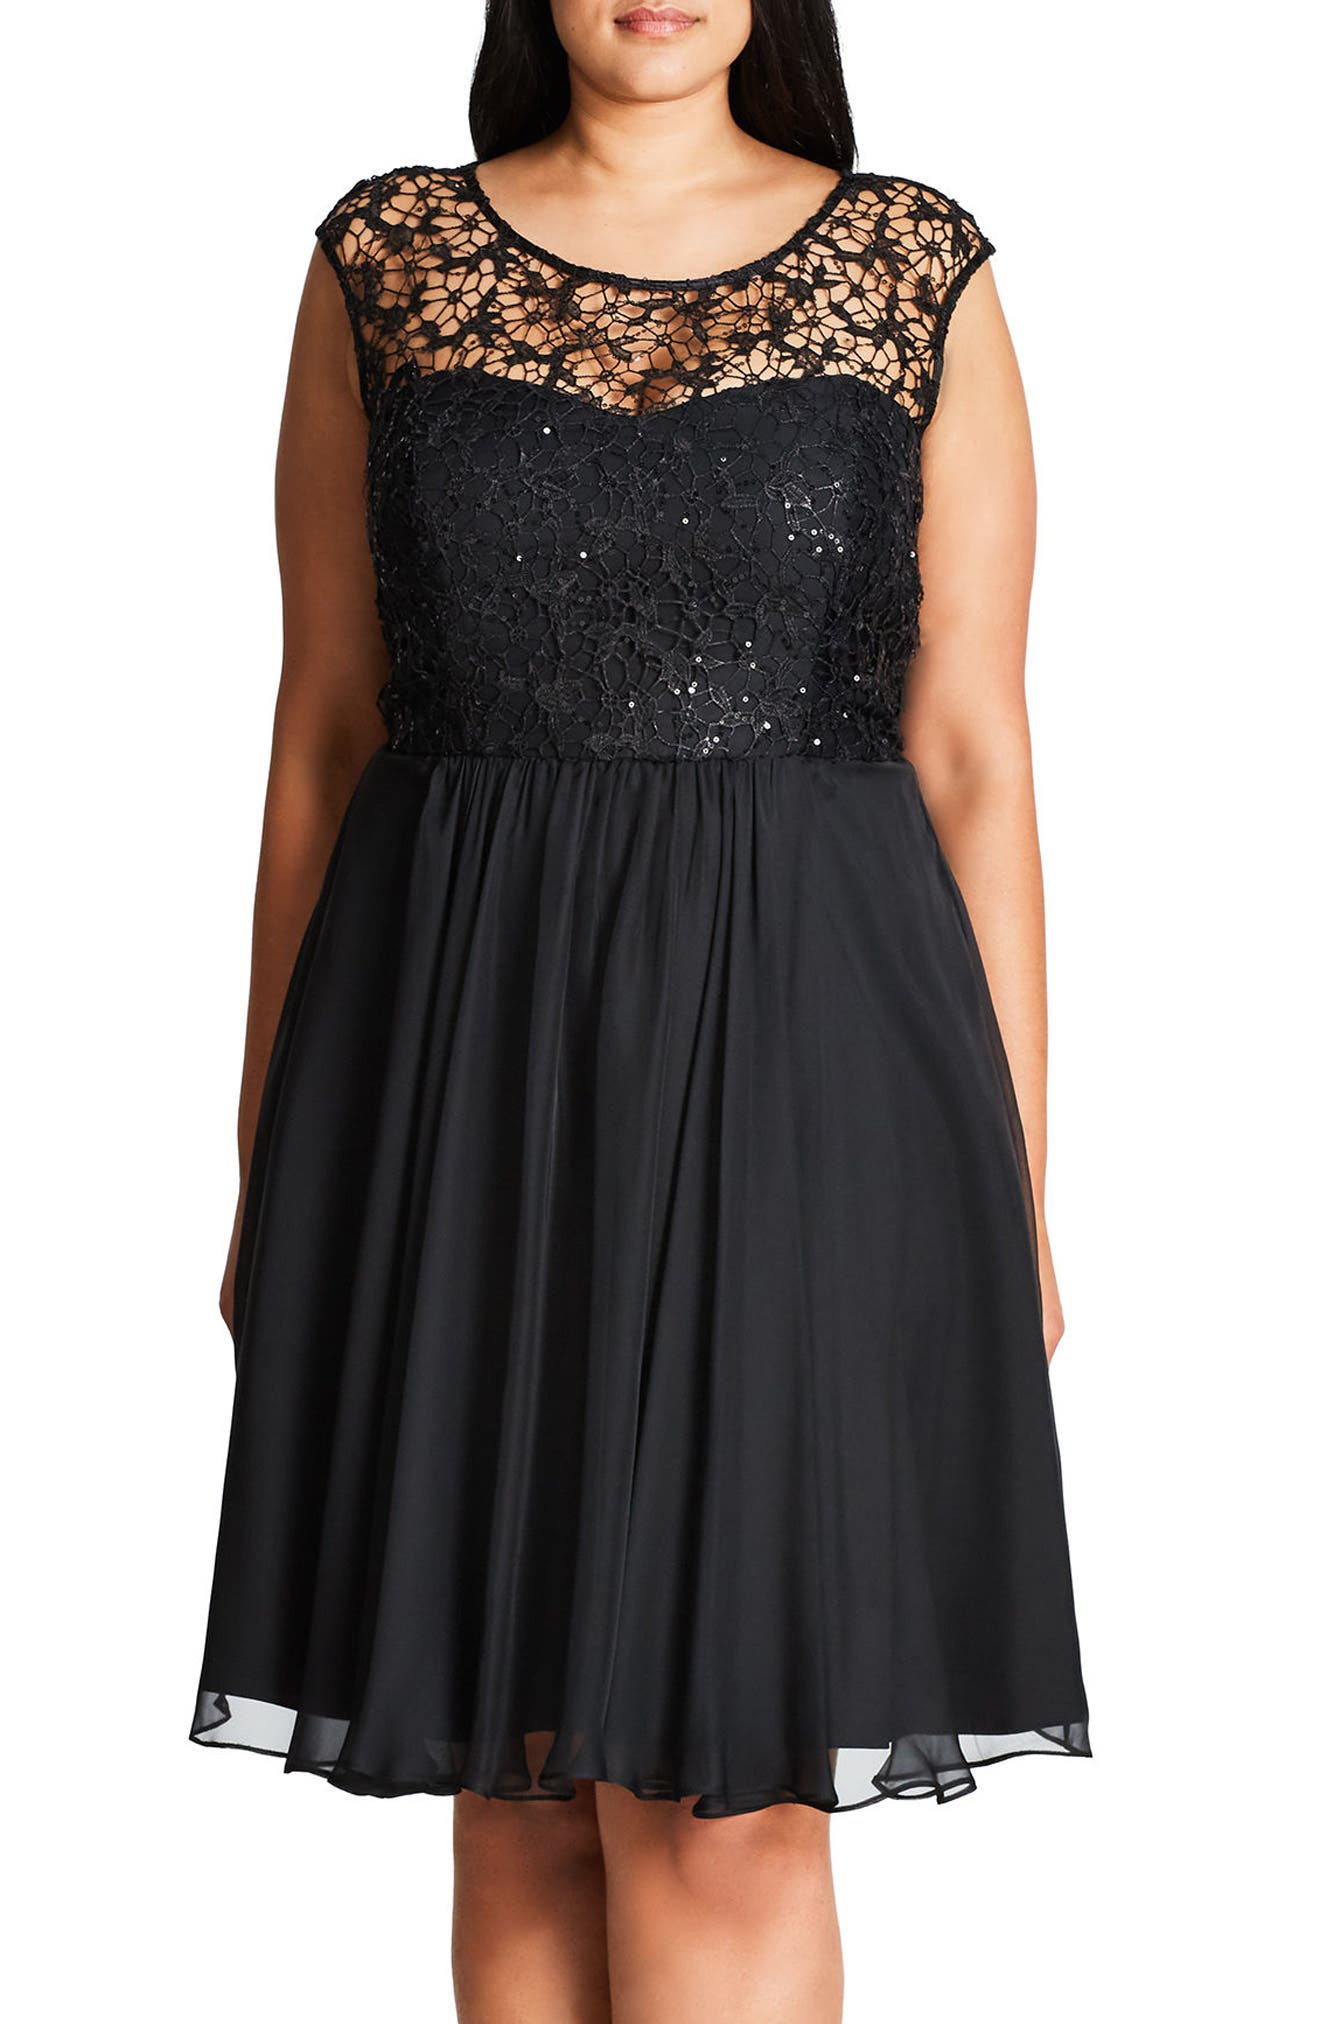 CITY CHIC Sequin Lace Fit & Flare Dress